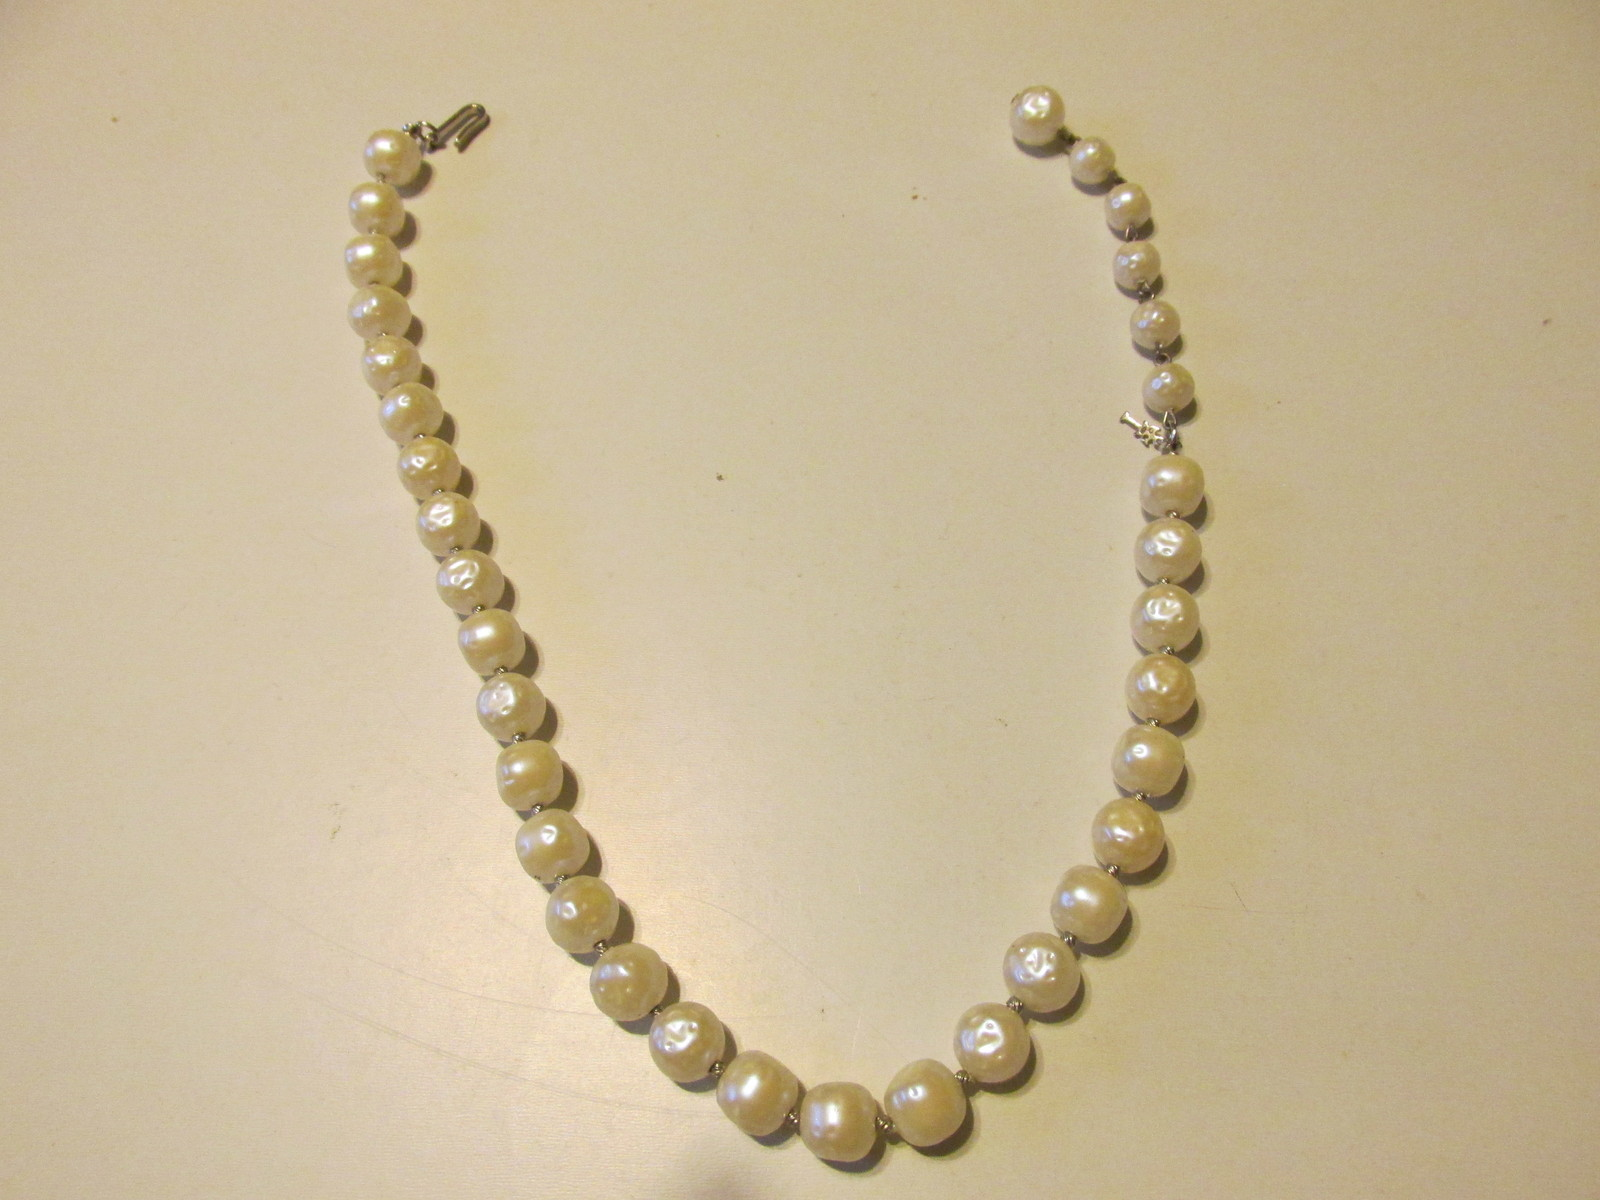 Vintage / Retro Trifari Pearlized Necklace - 1950s